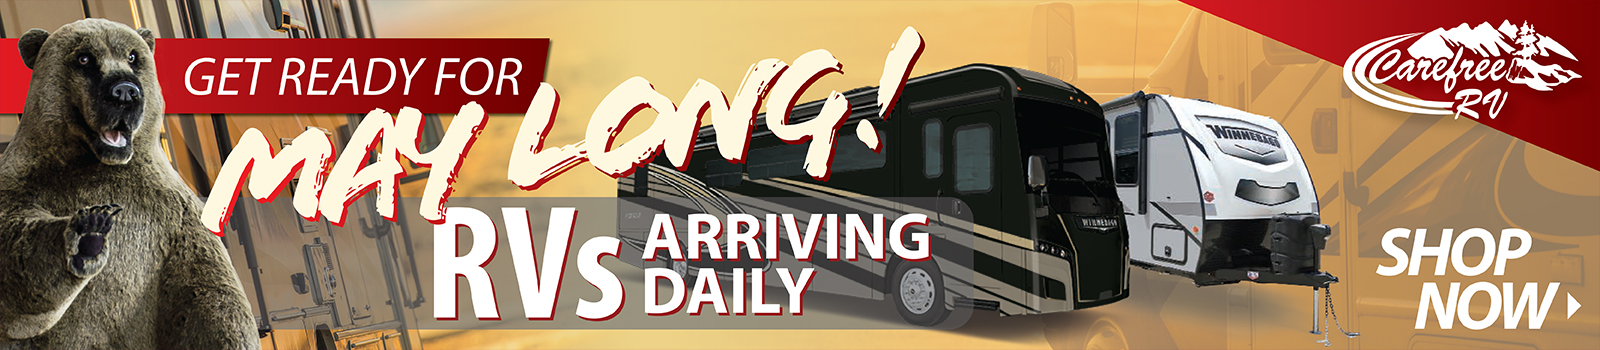 RVs Arriving Daily